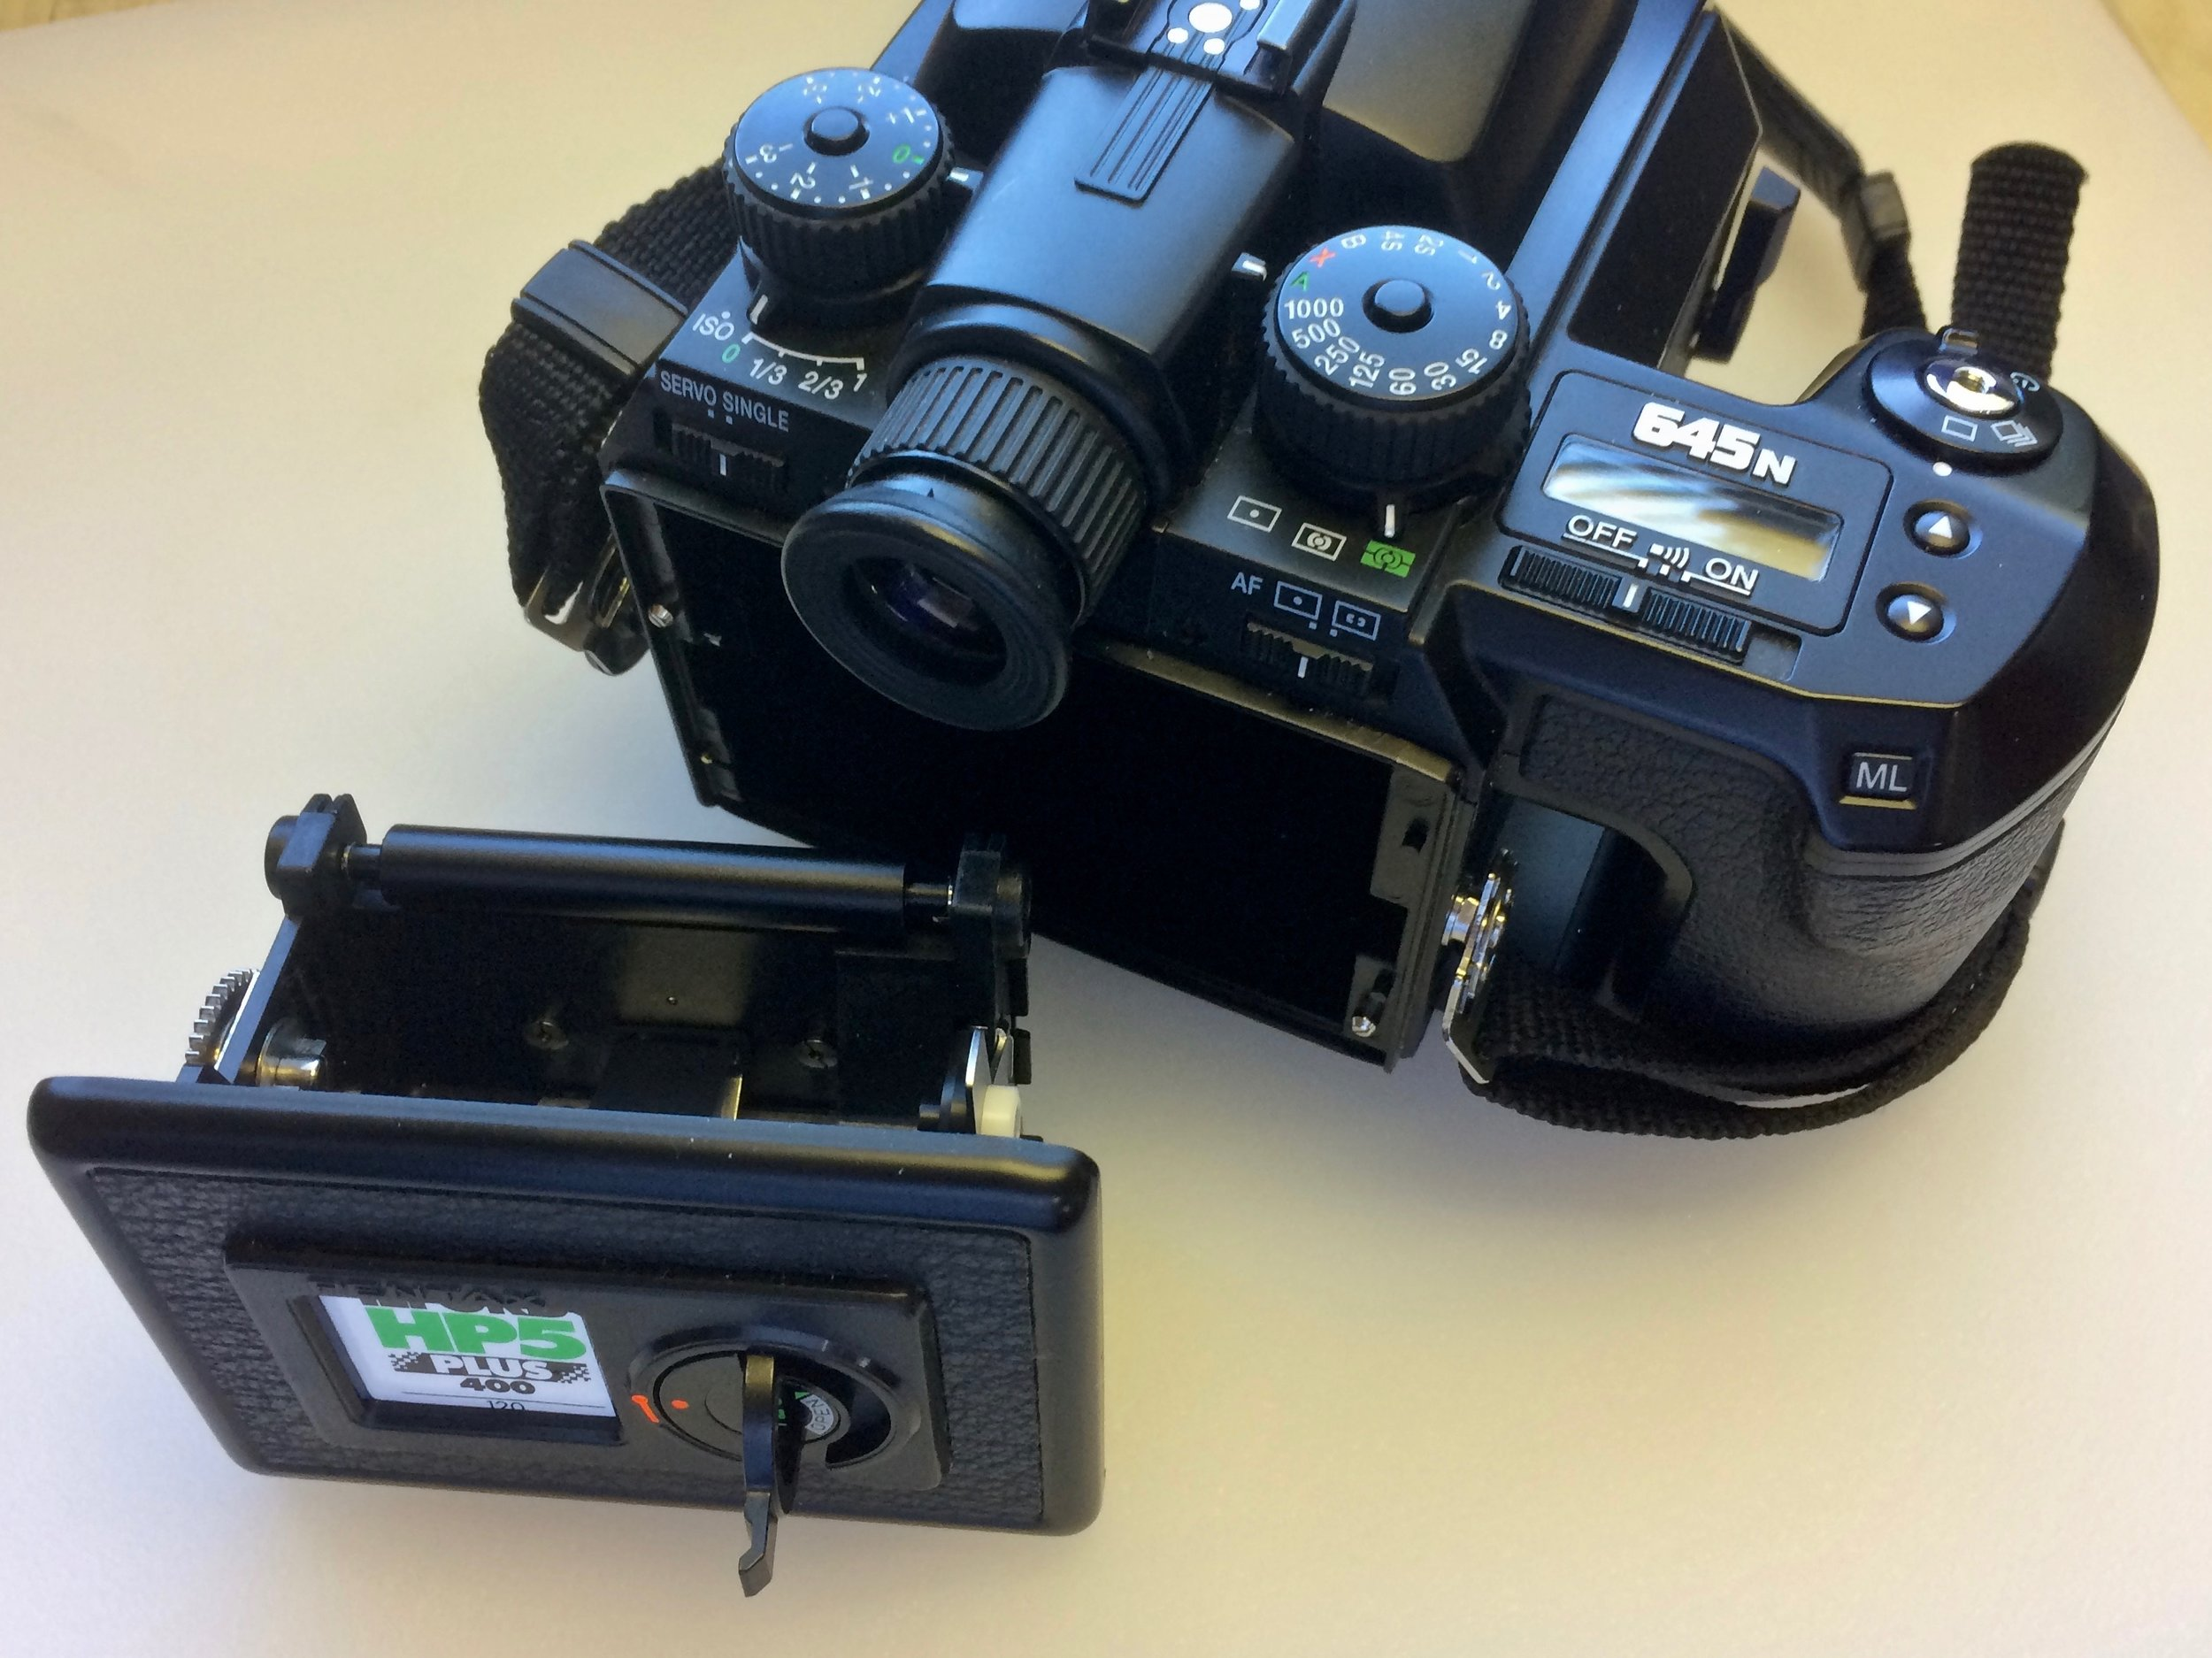 The Pentax 645n uses removable film inserts